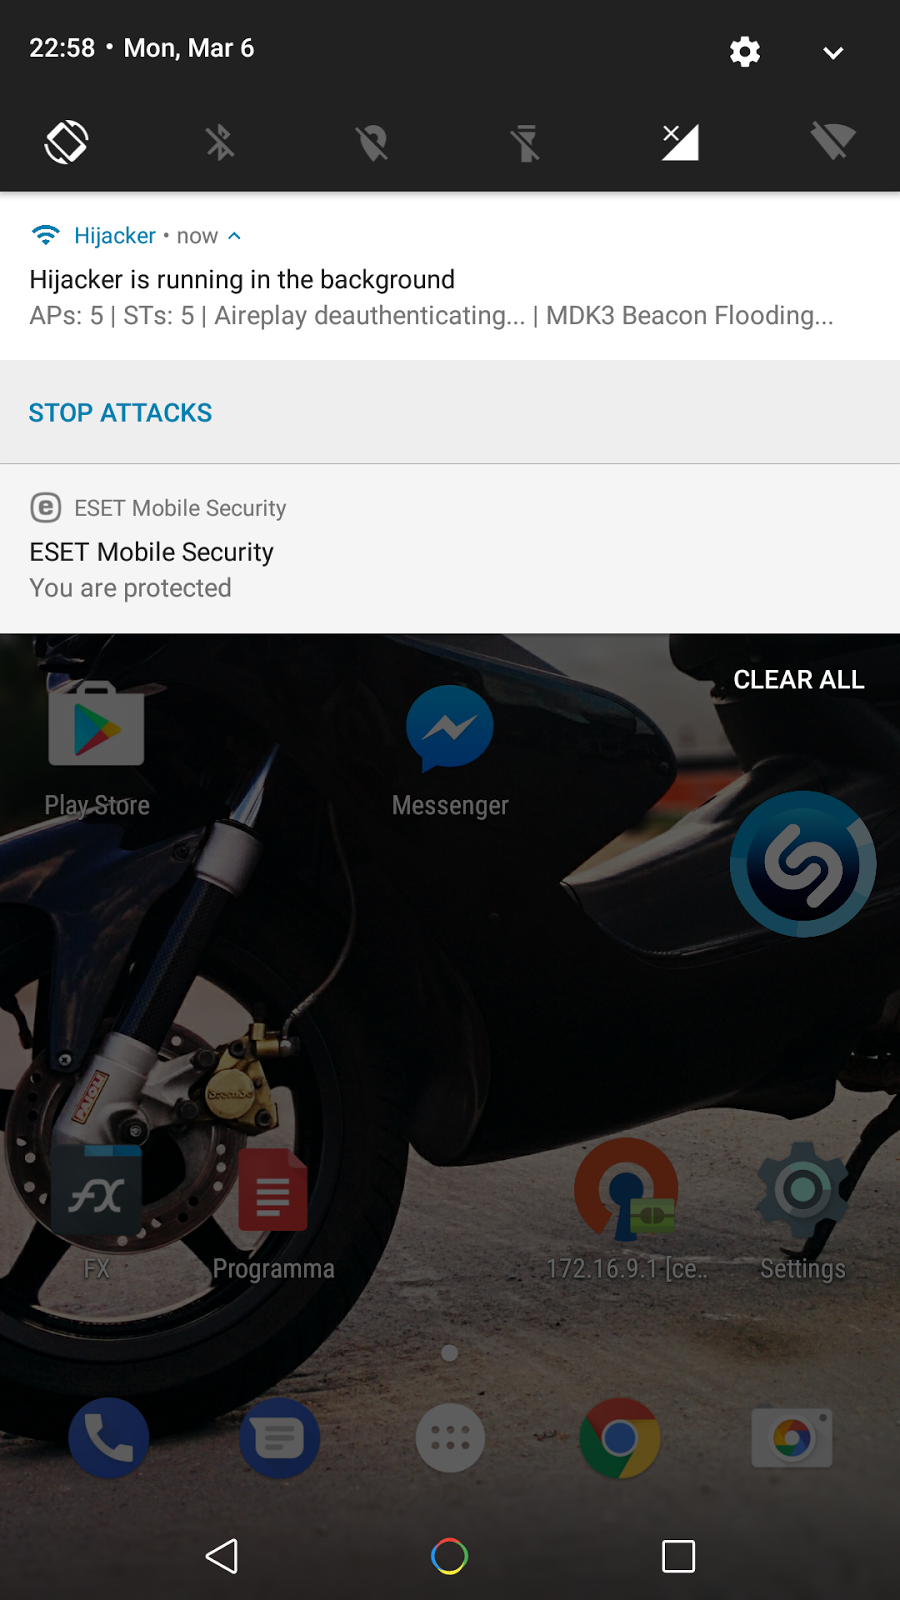 Hijacker v1 5 - All-in-One Wi-Fi Cracking Tools for Android